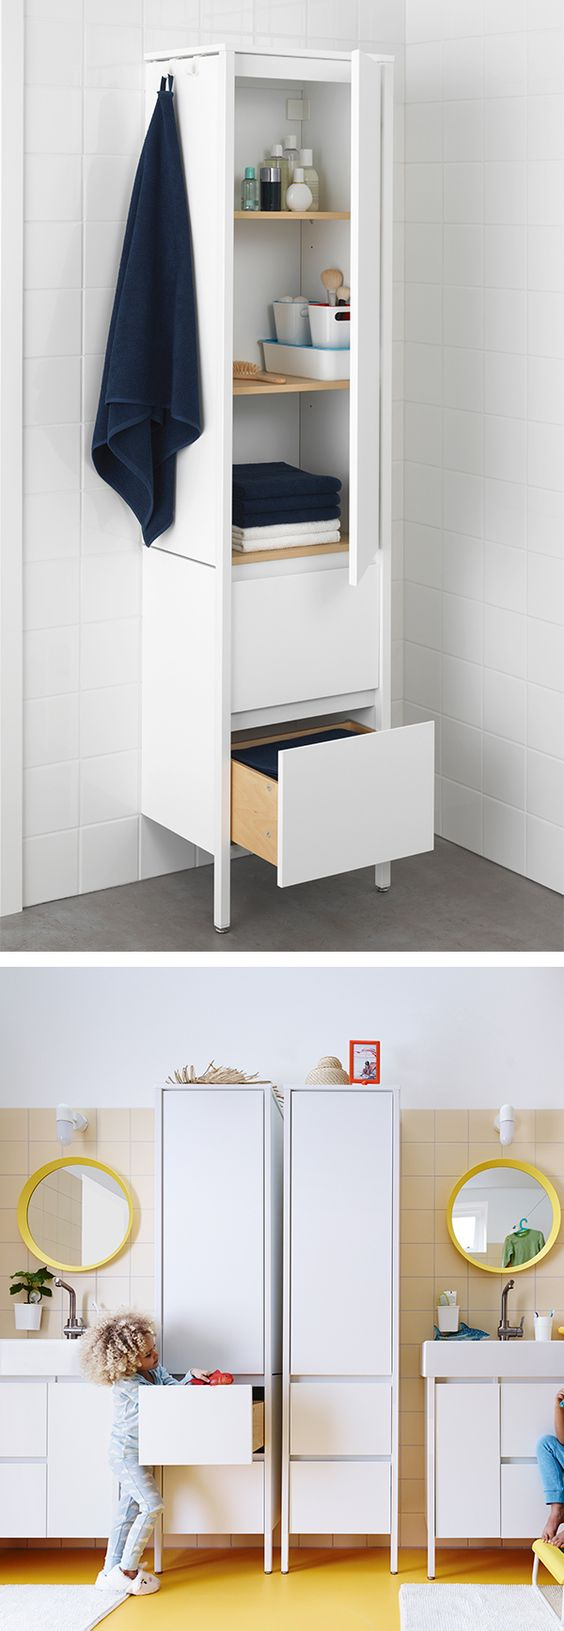 Yddingen towels cabinets and ikea cabinets Towel storage ideas ikea